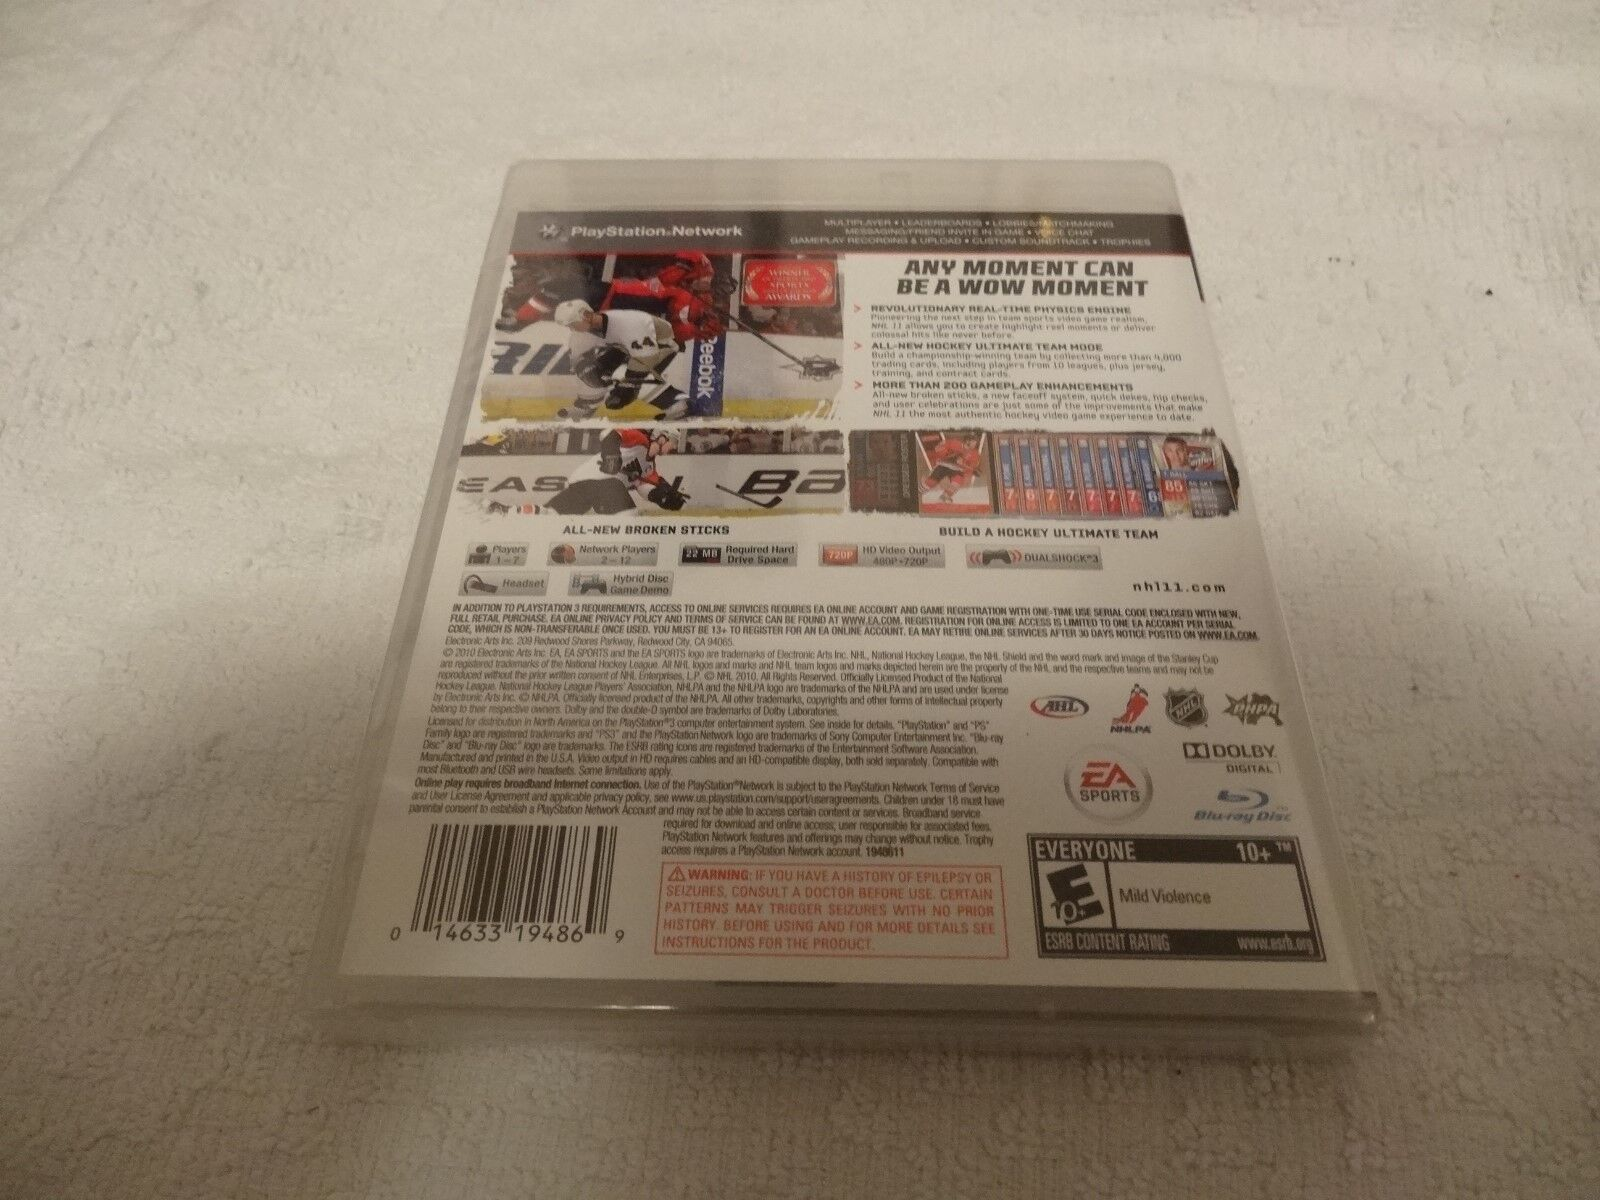 Nhl 11 Video Game Playstation 3 Ps3 New Sealed 1097 Picclick Network 200 Of See More